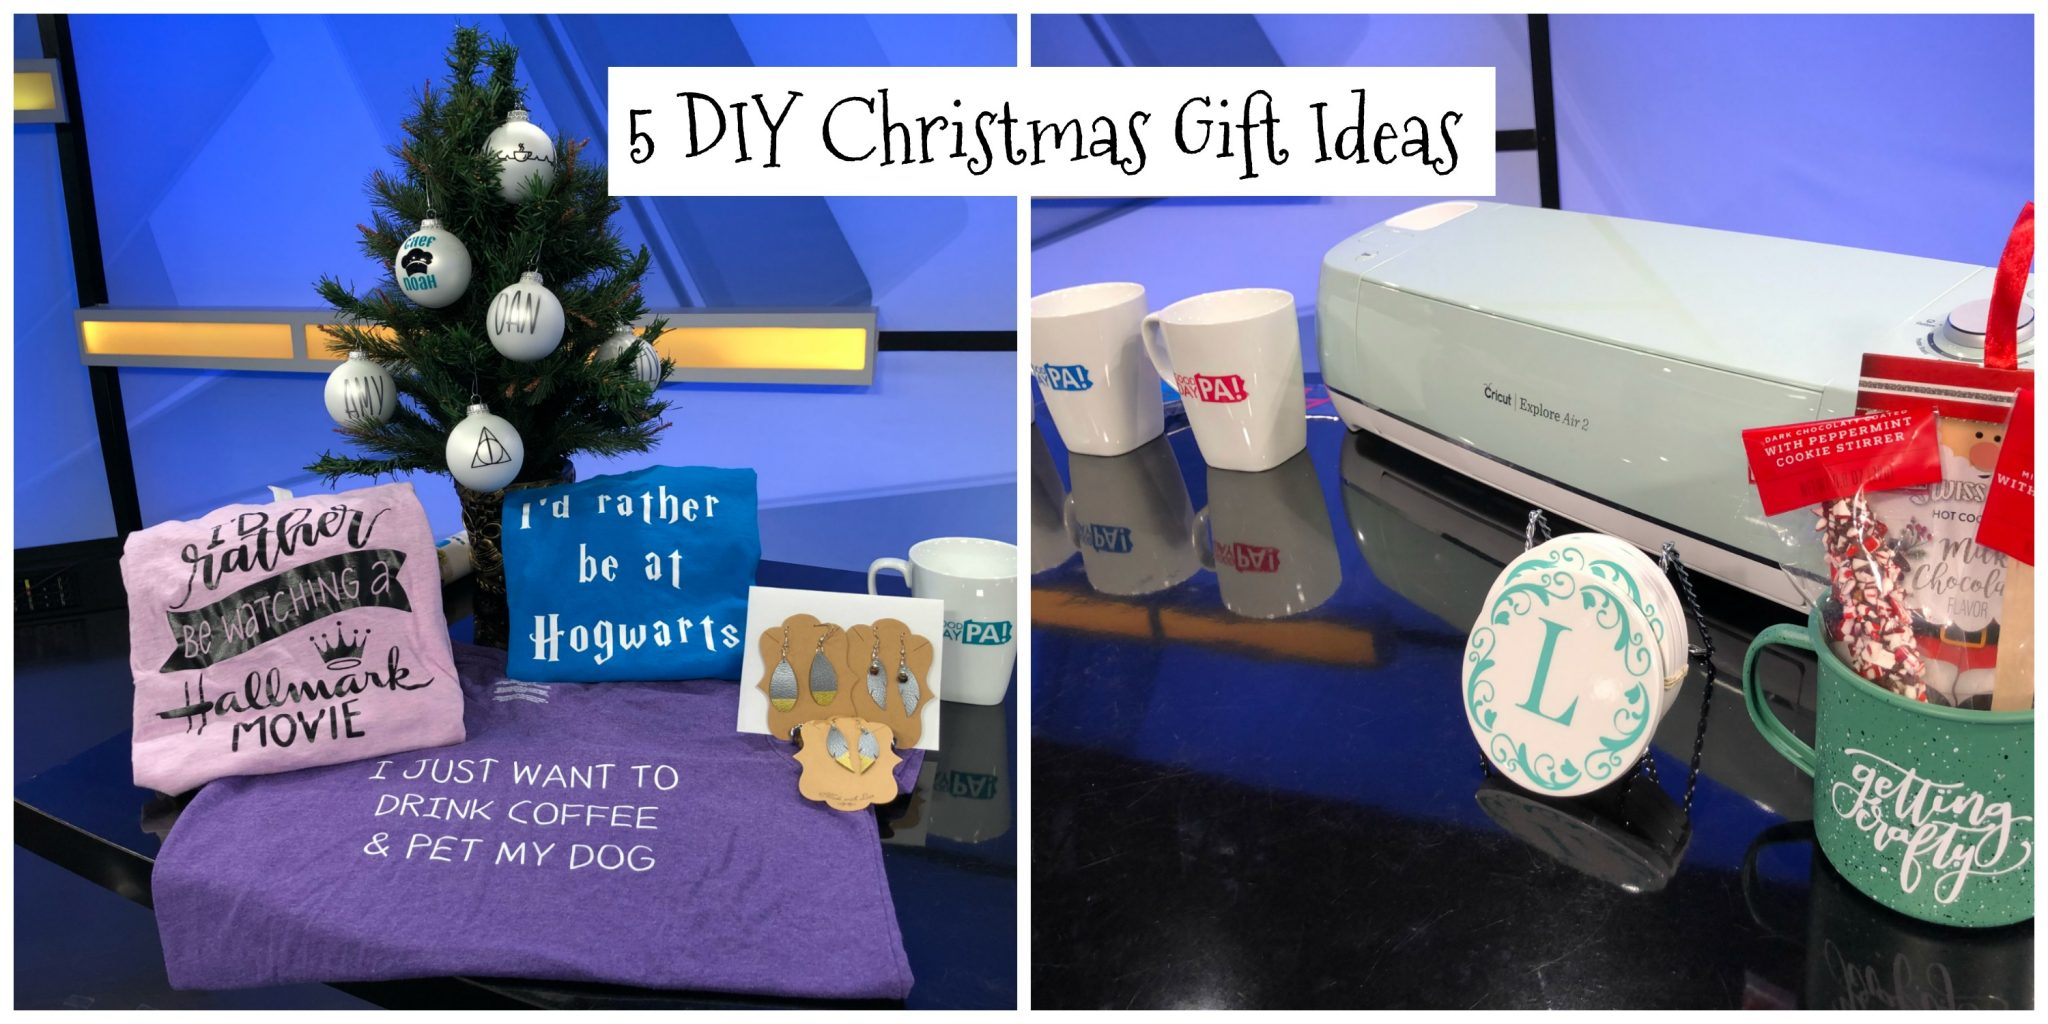 5 Holiday Gifts with the Cricut Explore Air 2